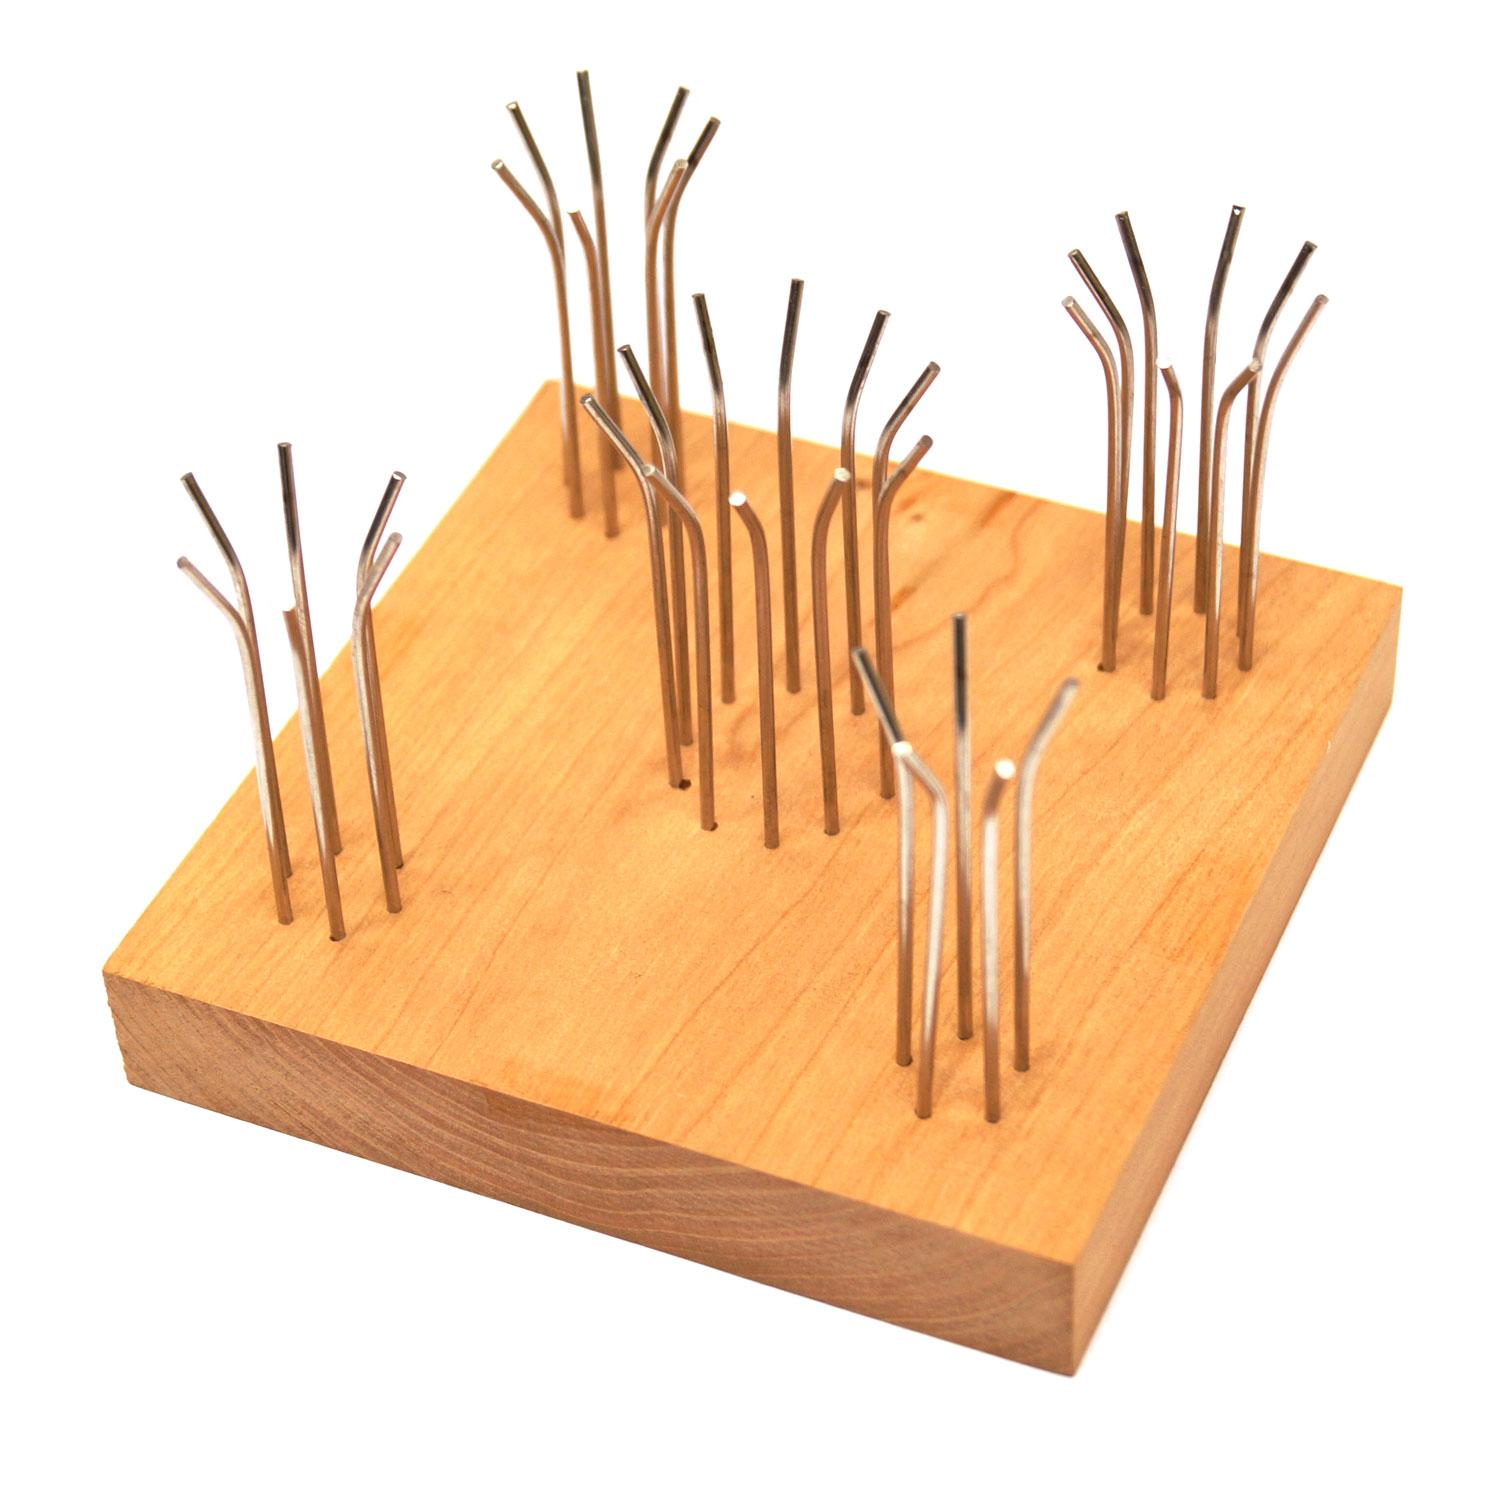 5-in-1 Optic Mold with Wooden Base